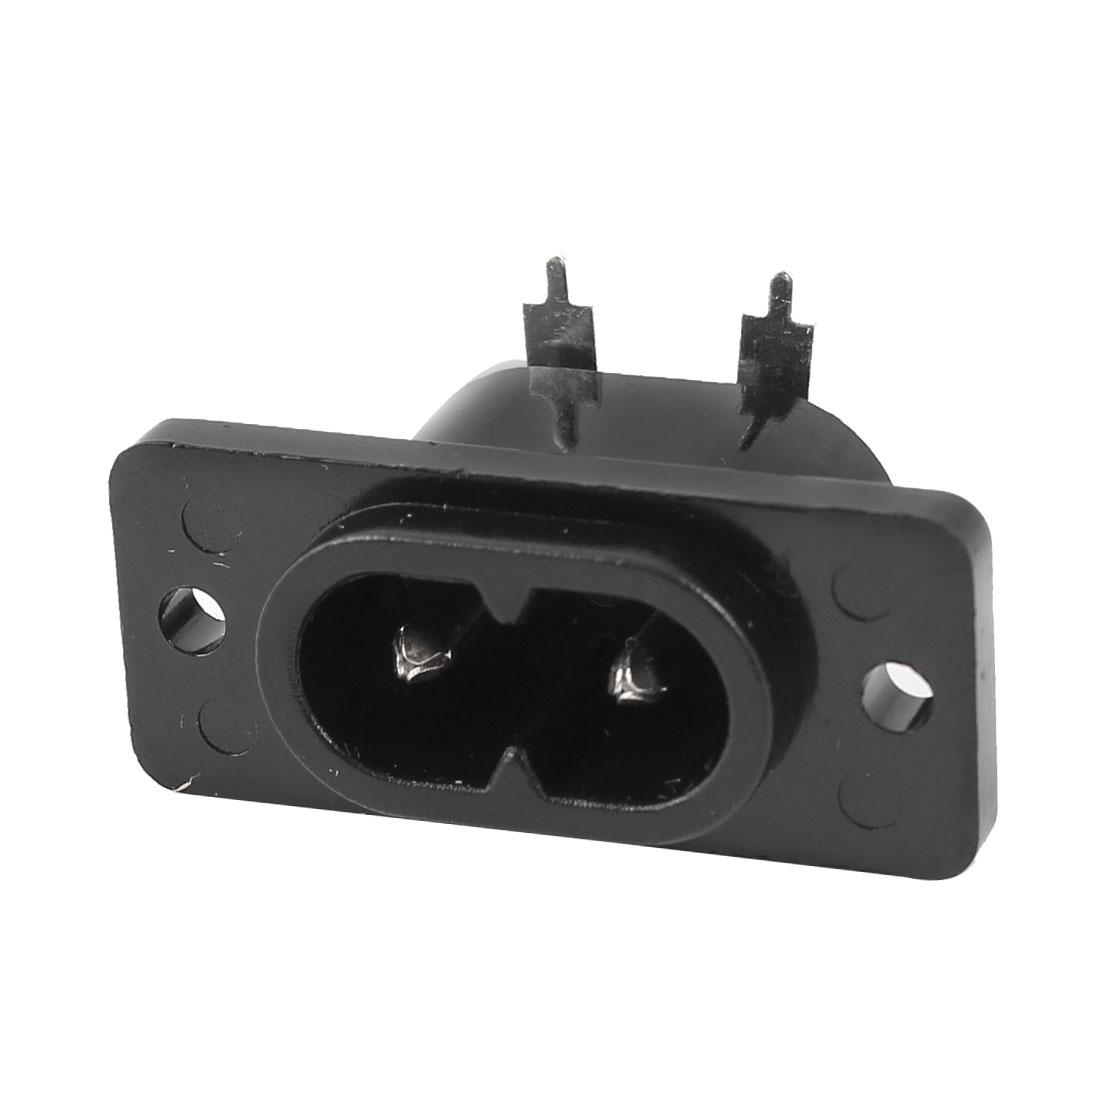 Black 2-Pole IEC320 C8 Inlet Power Socket Connector AC 250V 2.5A